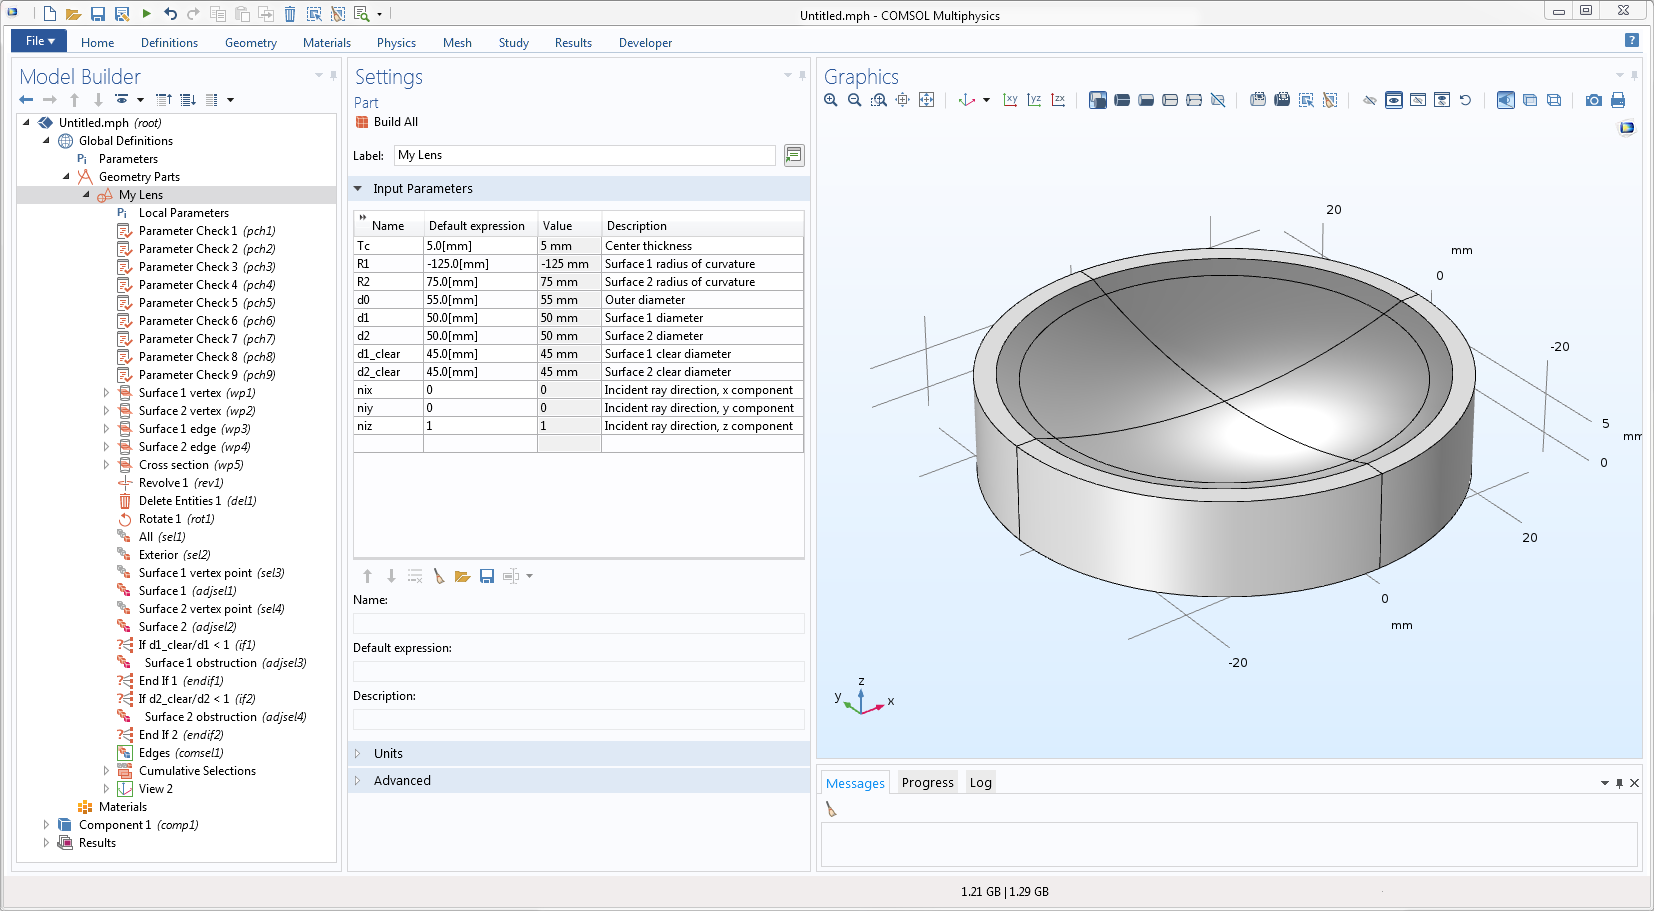 A screenshot of the COMSOL Multiphysics® GUI showing an example of a user-defined geometry part.